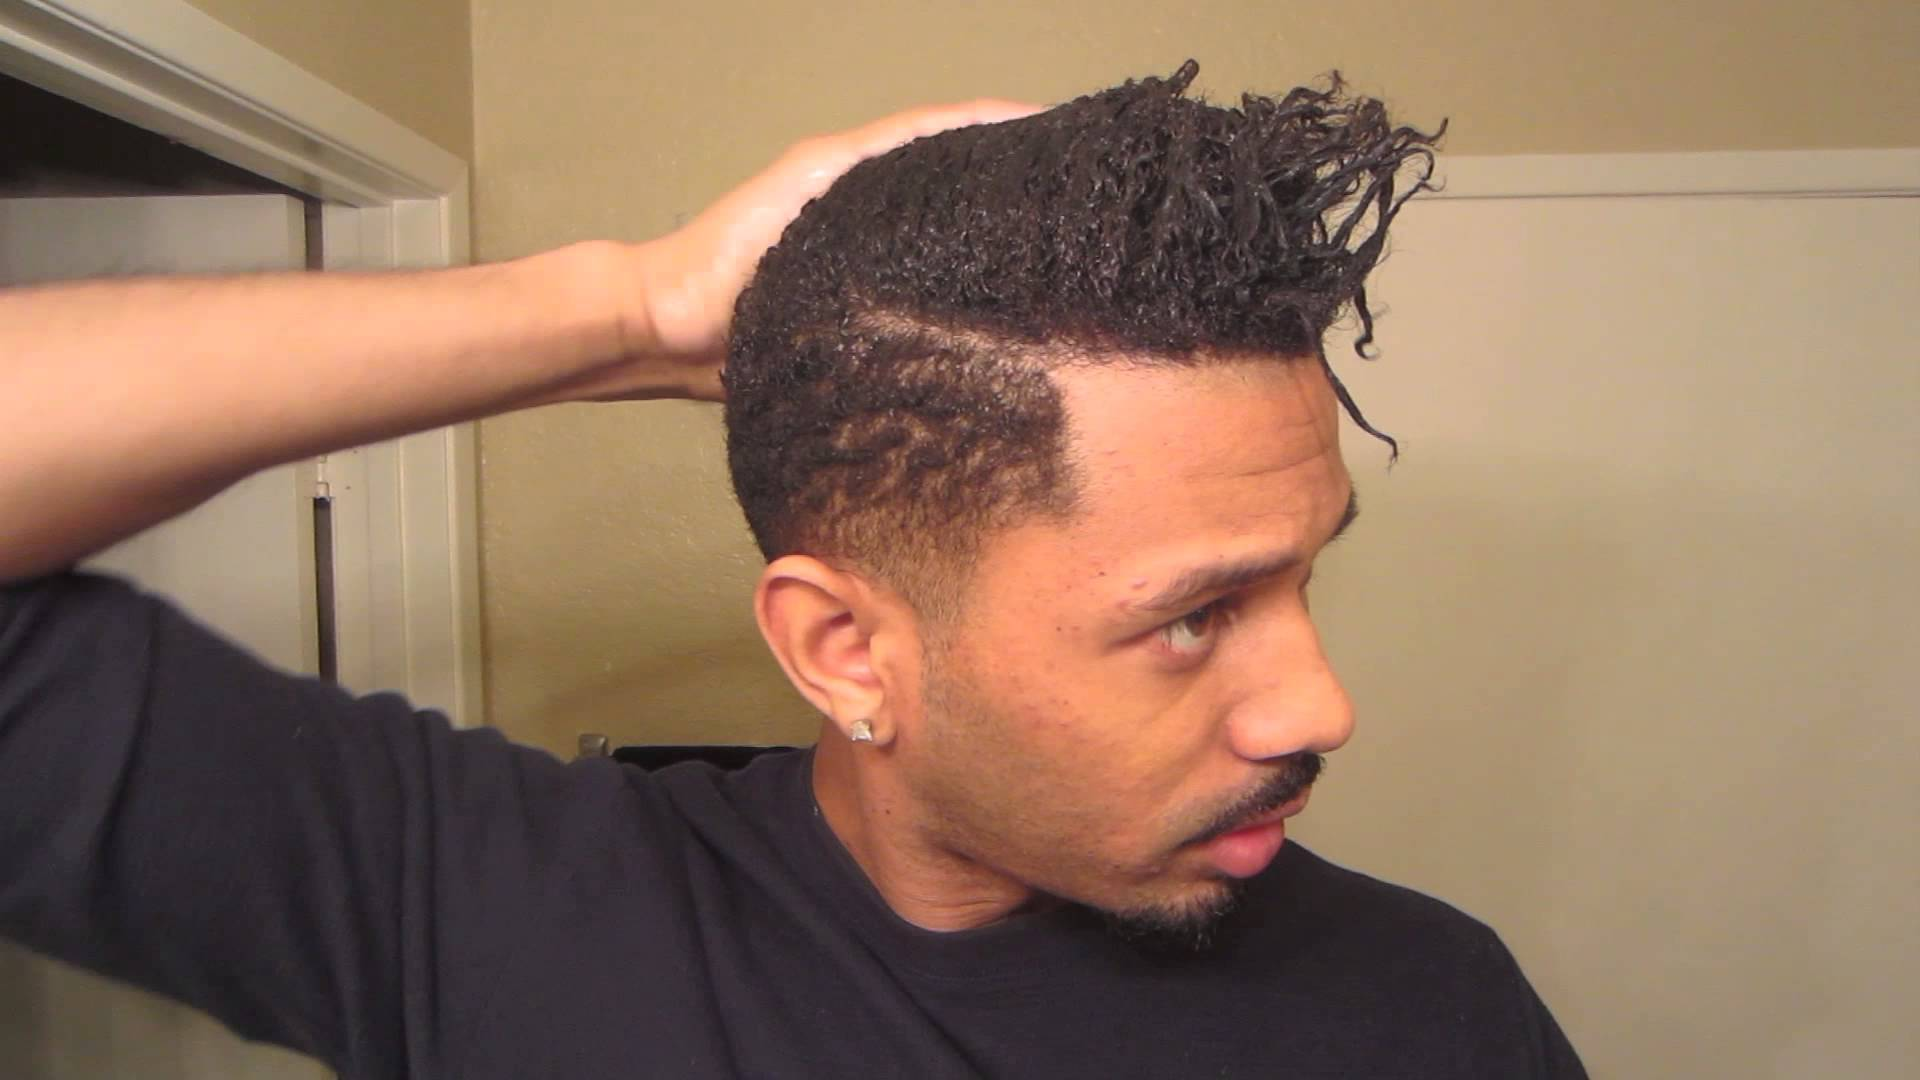 Sources of Inspiration for Stunning Black Men Hair Style